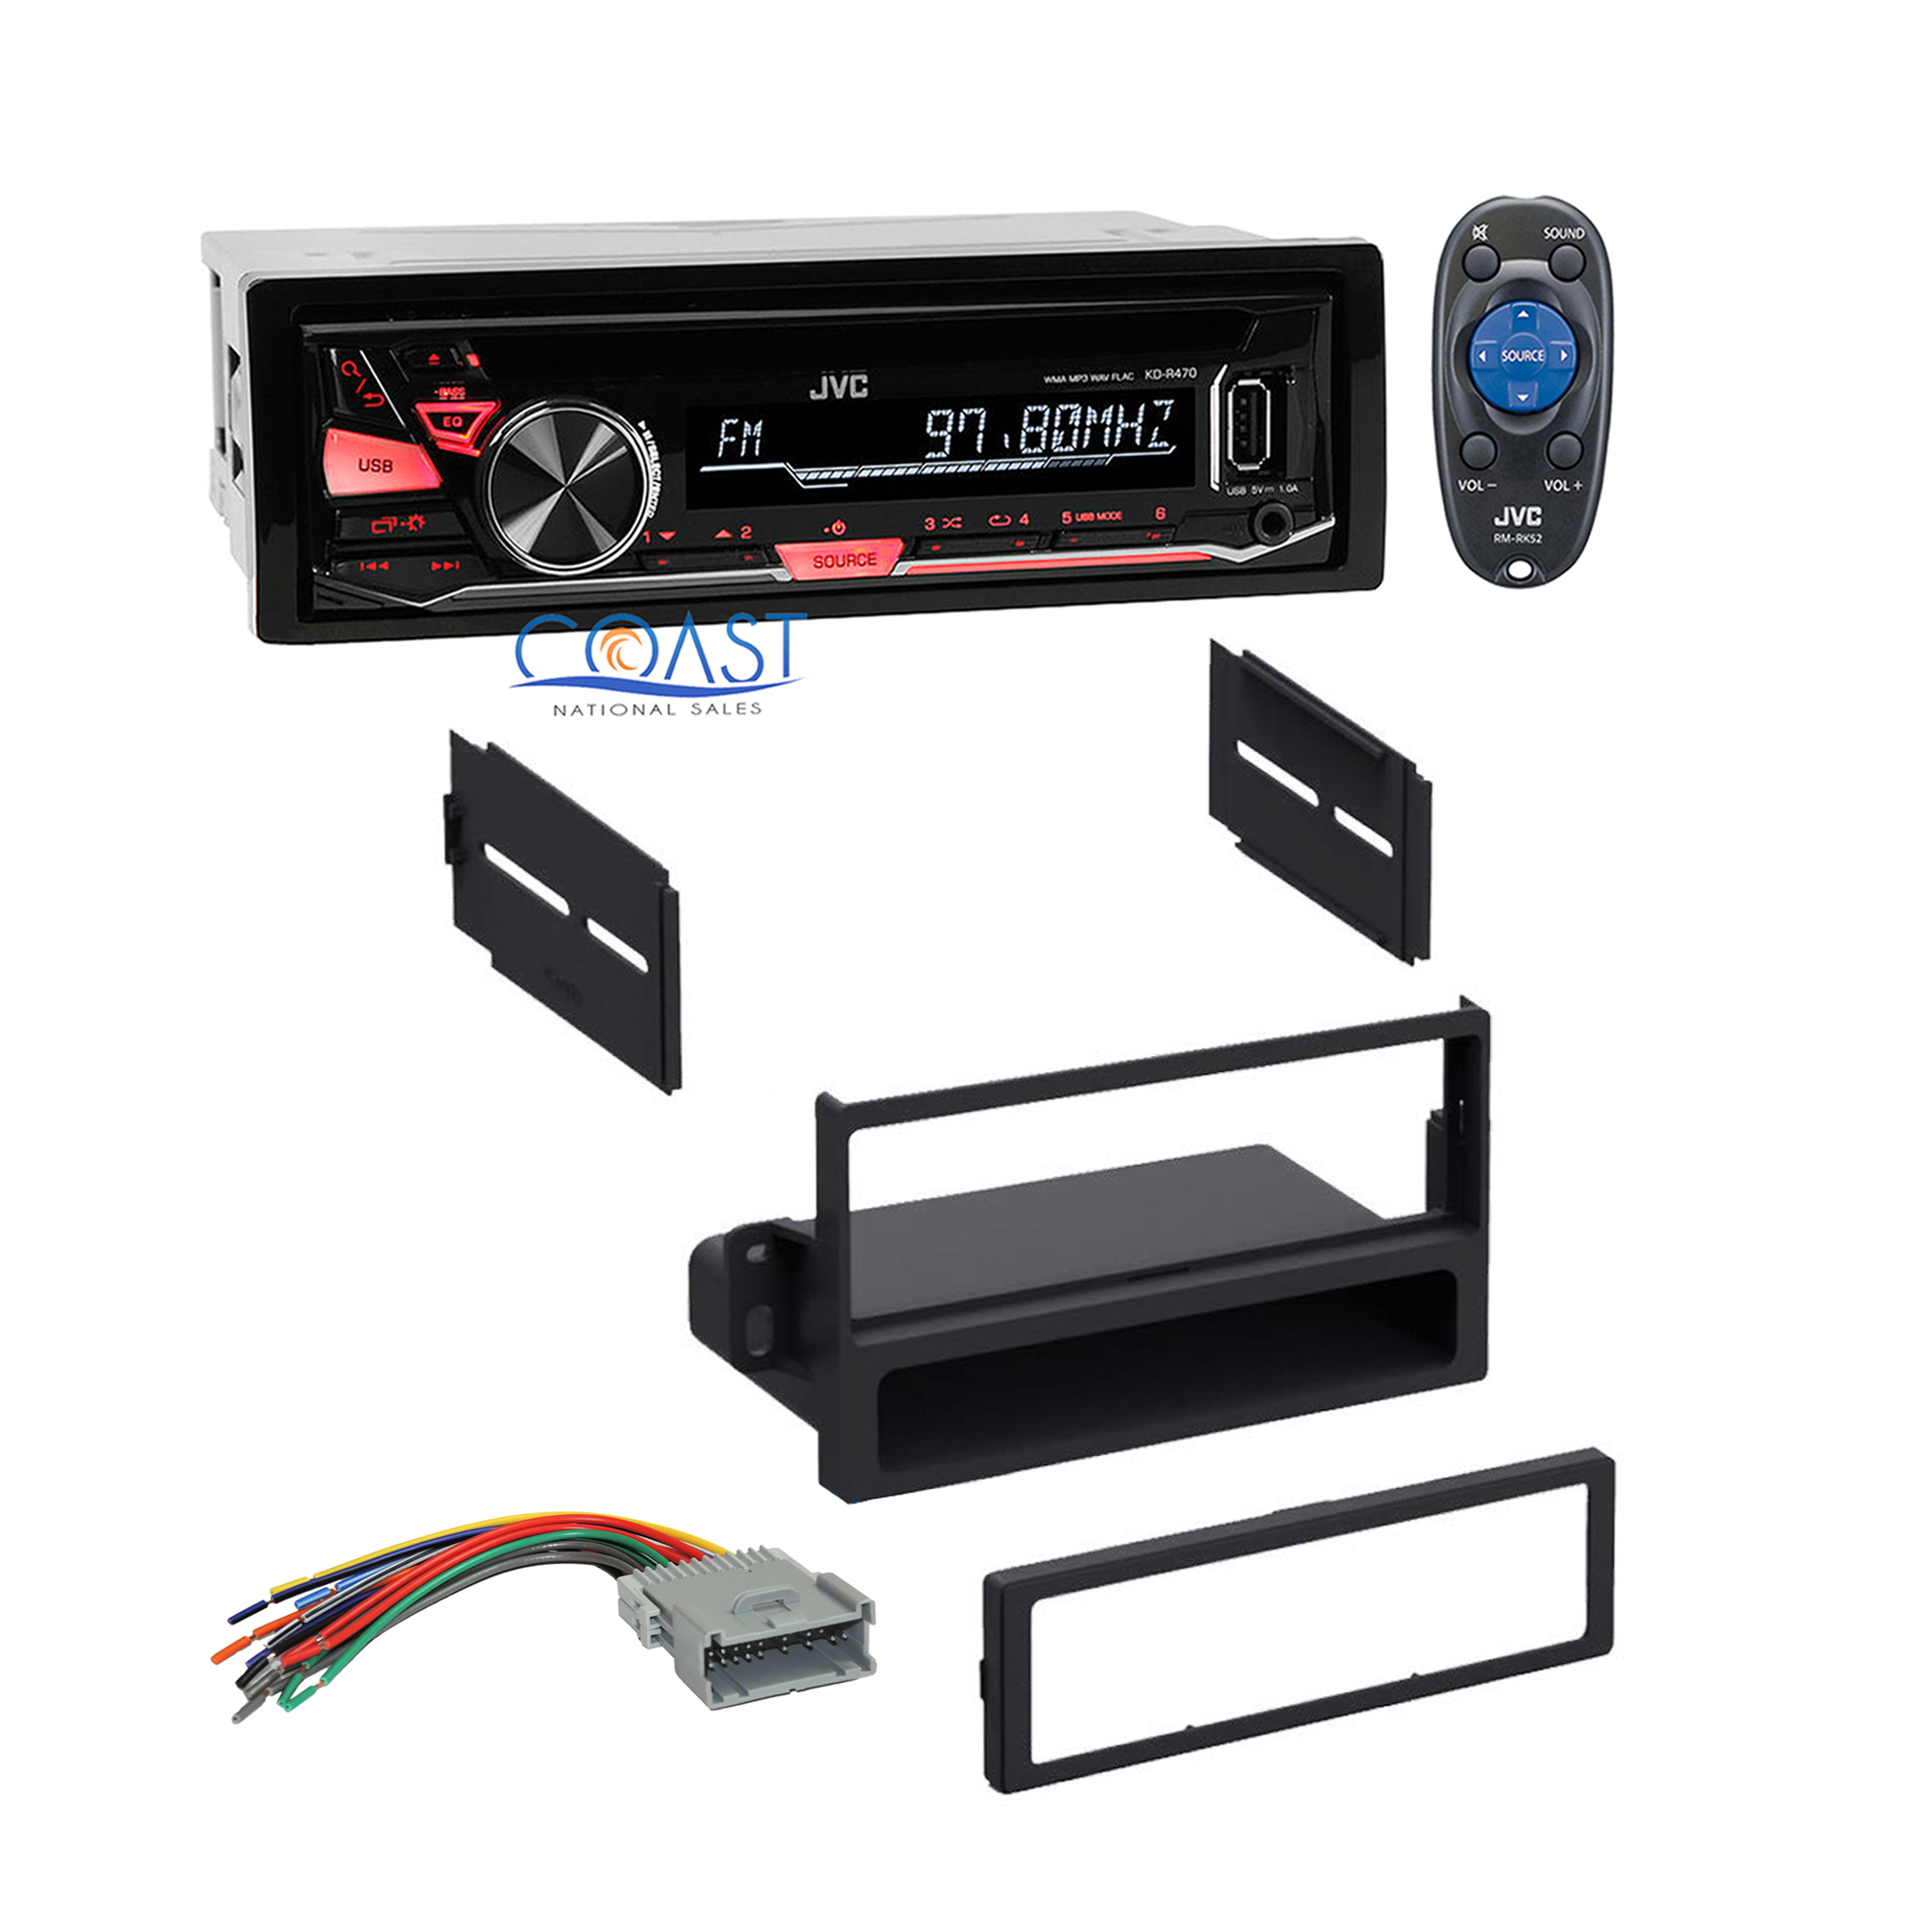 jvc car radio stereo dash kit wire harness for 2000 2005 saturn ion vue sc